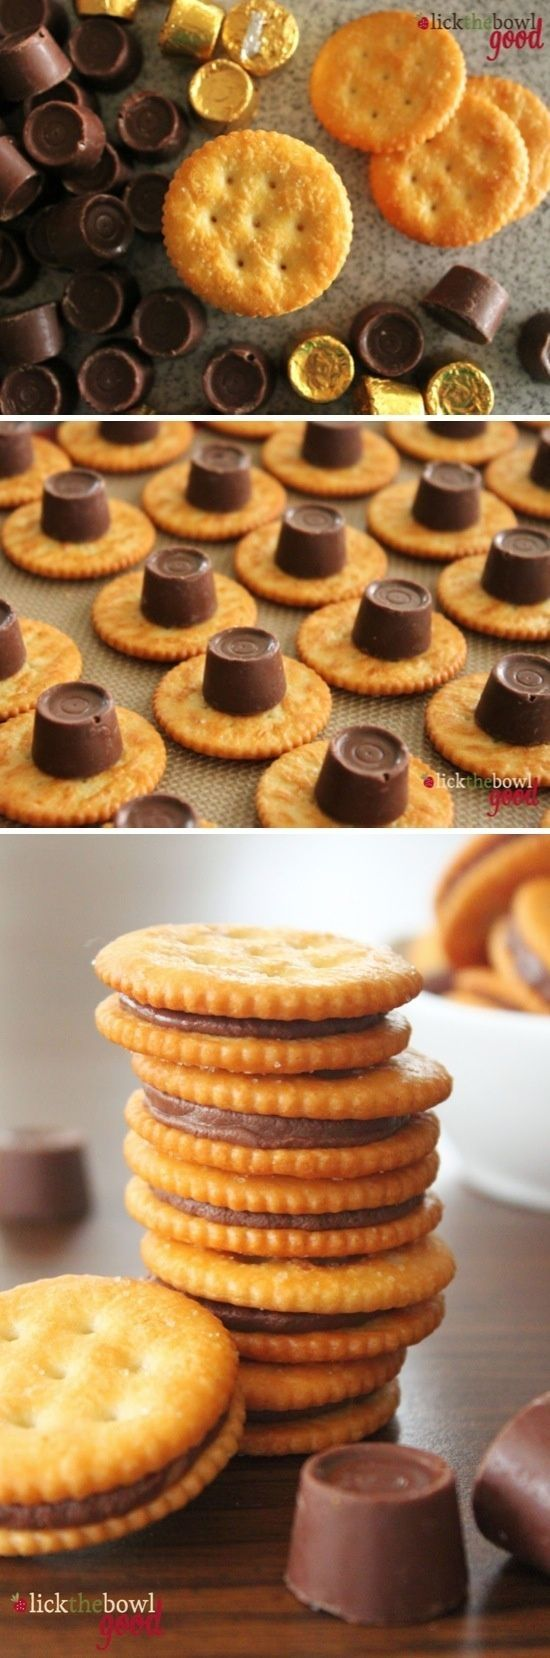 Preheat  to 350 degrees. Rollo Stuffed Ritz Crackers-salty side down, place 1 Rolo / cracker. Bake 3-5 min to melt Rolo, then add another cr...